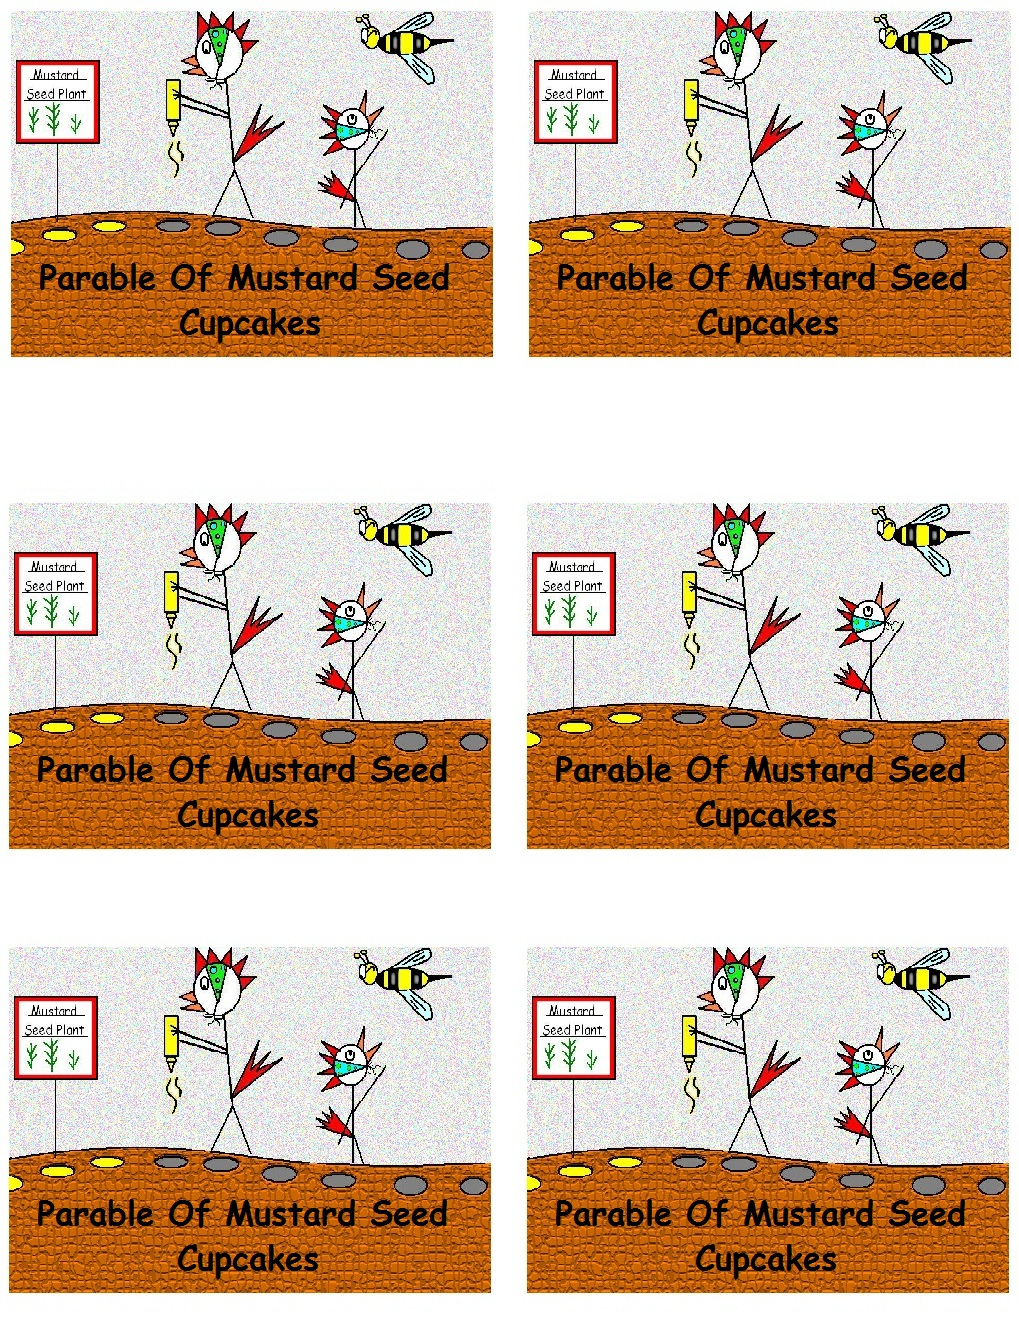 The Parable Of The Mustard Seed Sunday School Lesson